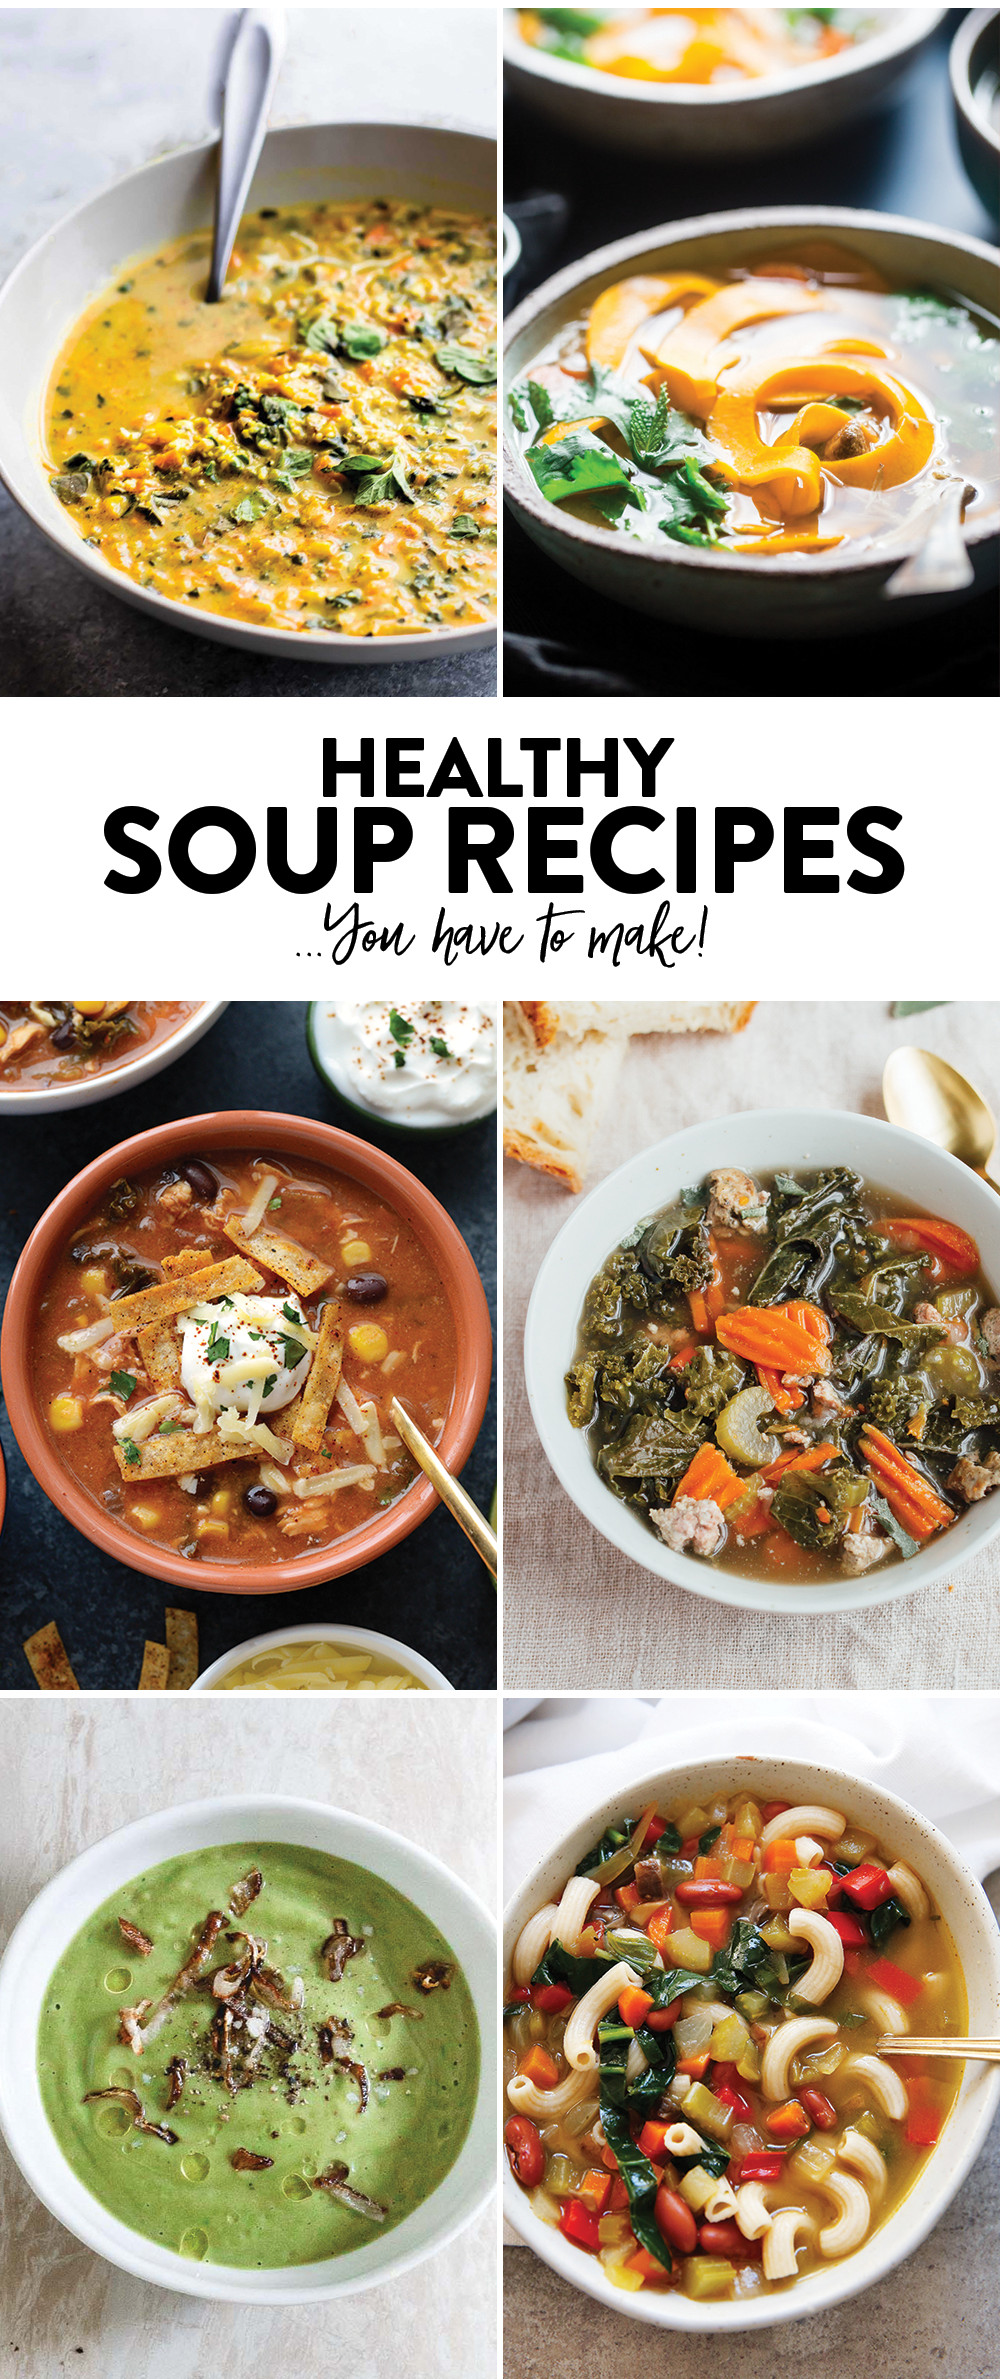 Healthy Kale Recipes  Curried Cauliflower Rice Kale Soup Paleo Vegan